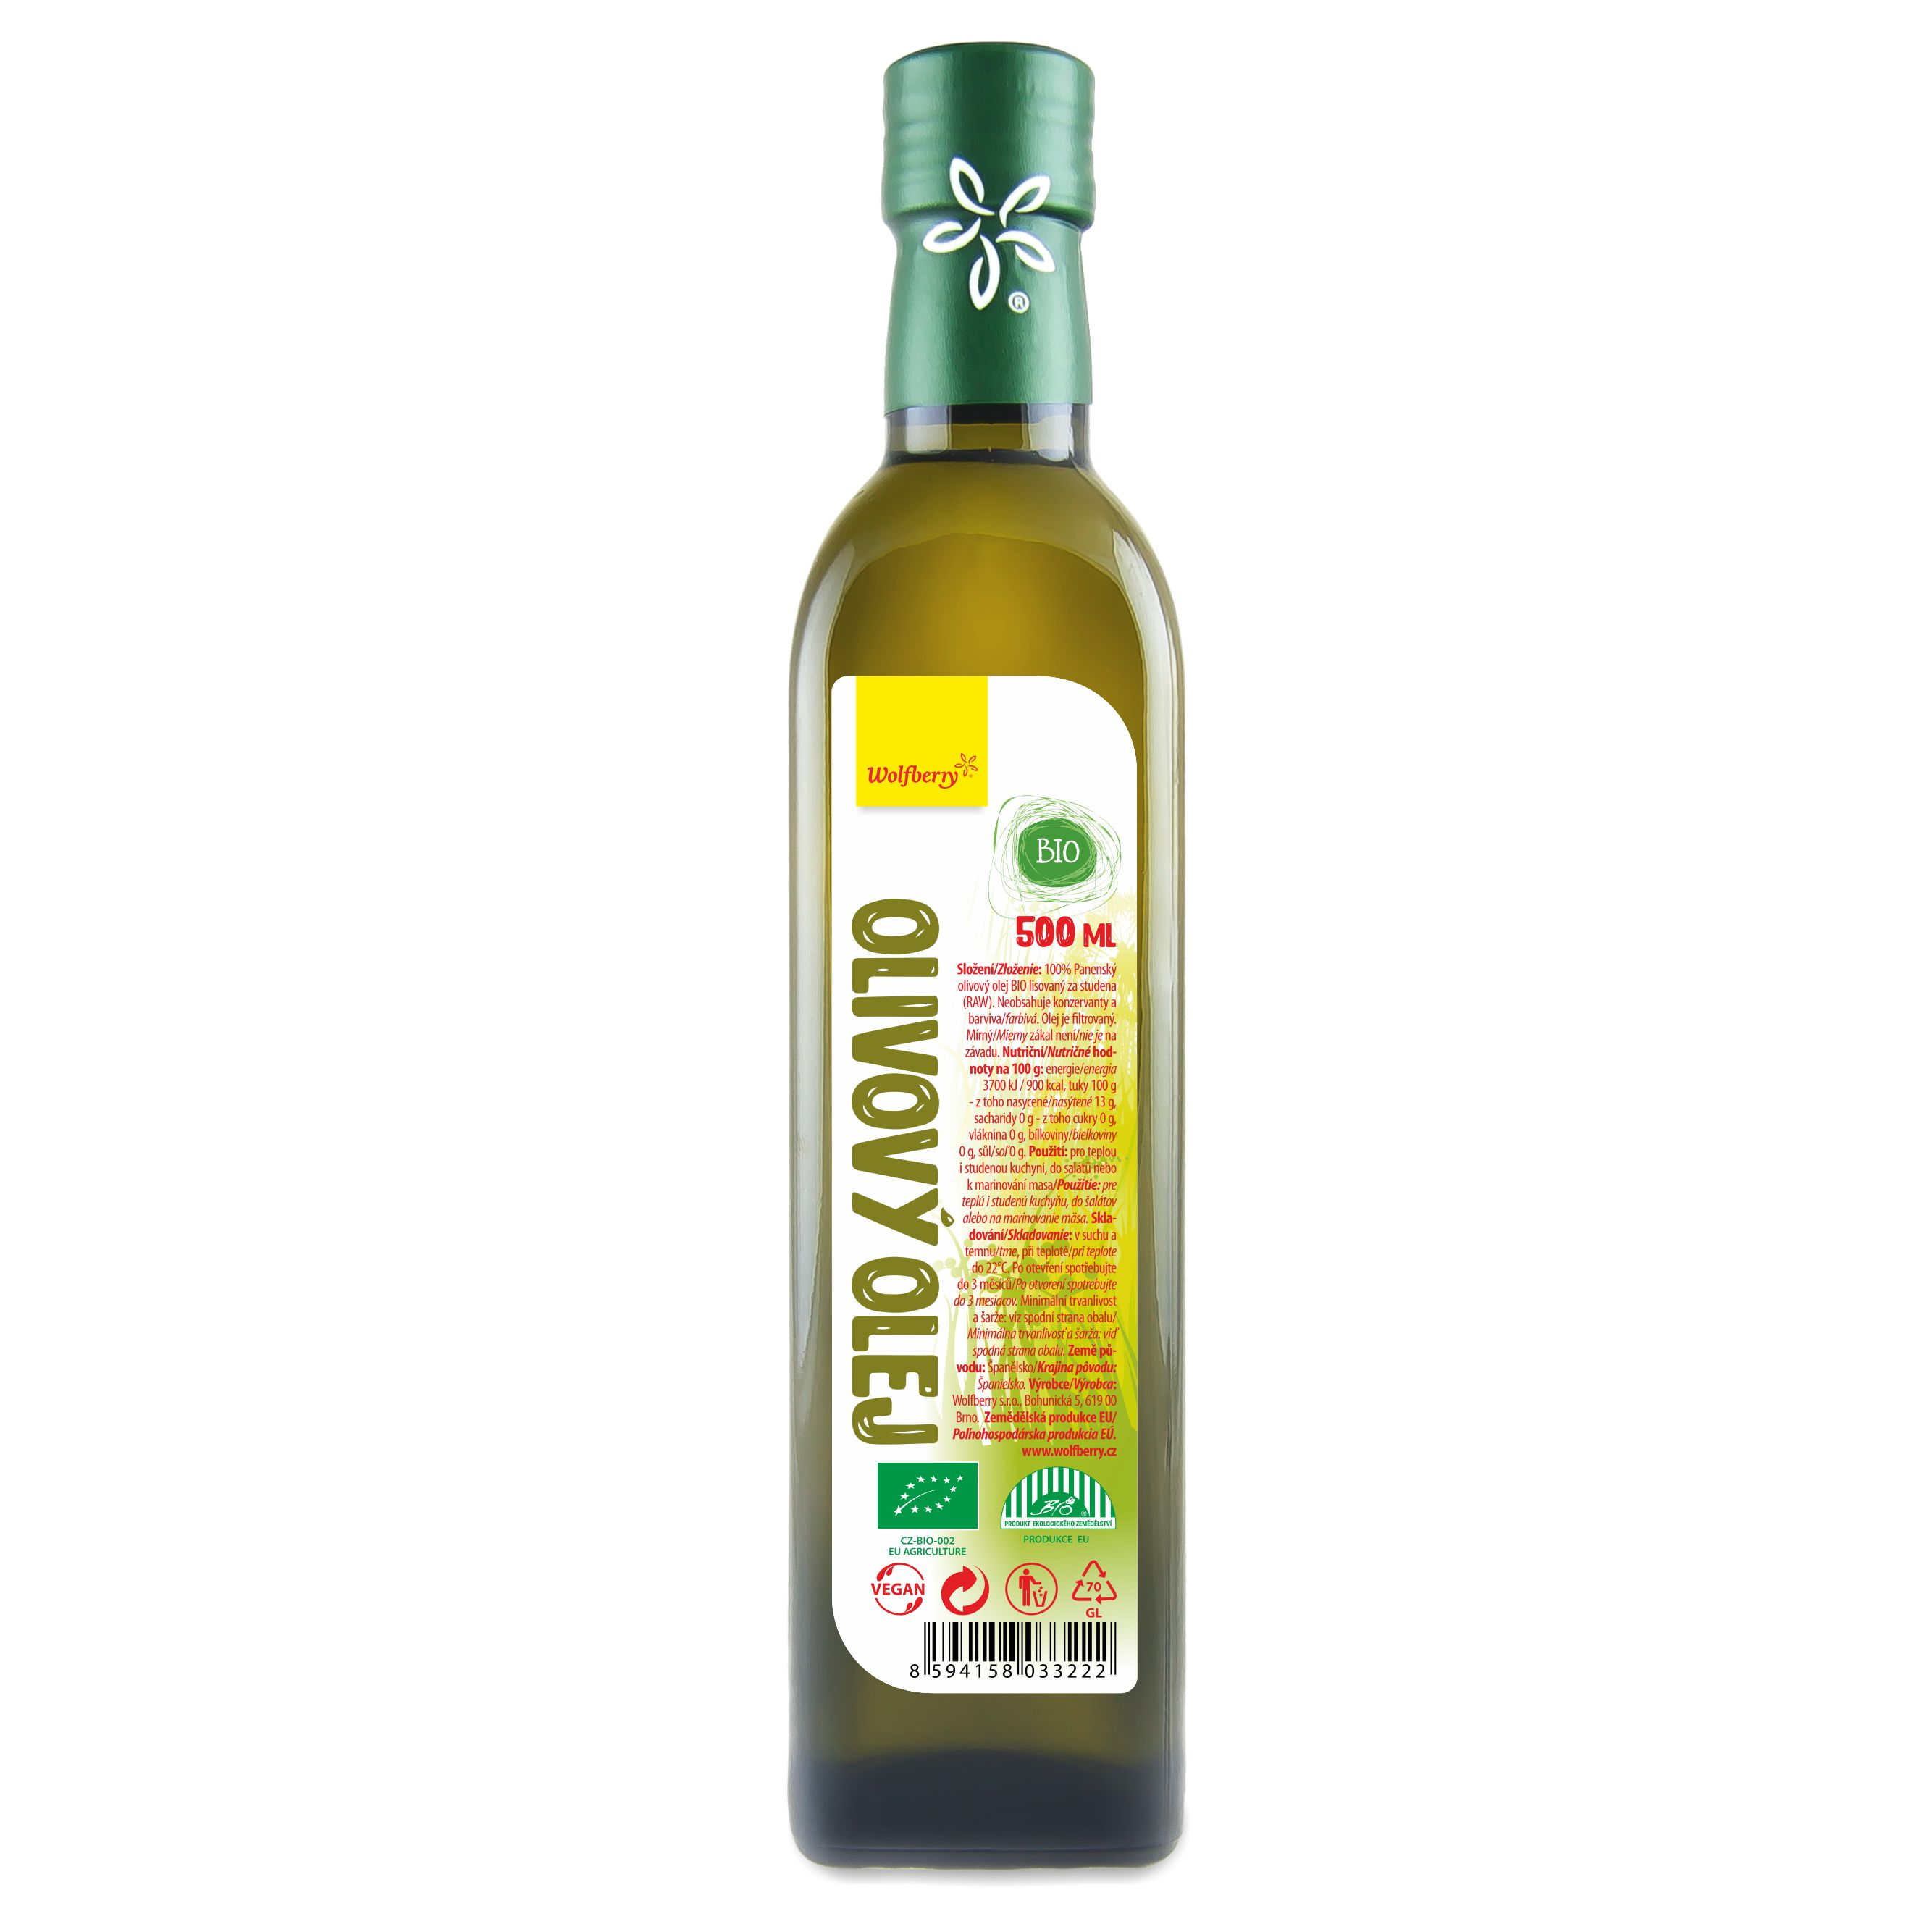 Wolfberry Olivový olej panenský BIO 500 ml Wolfberry * 500ml